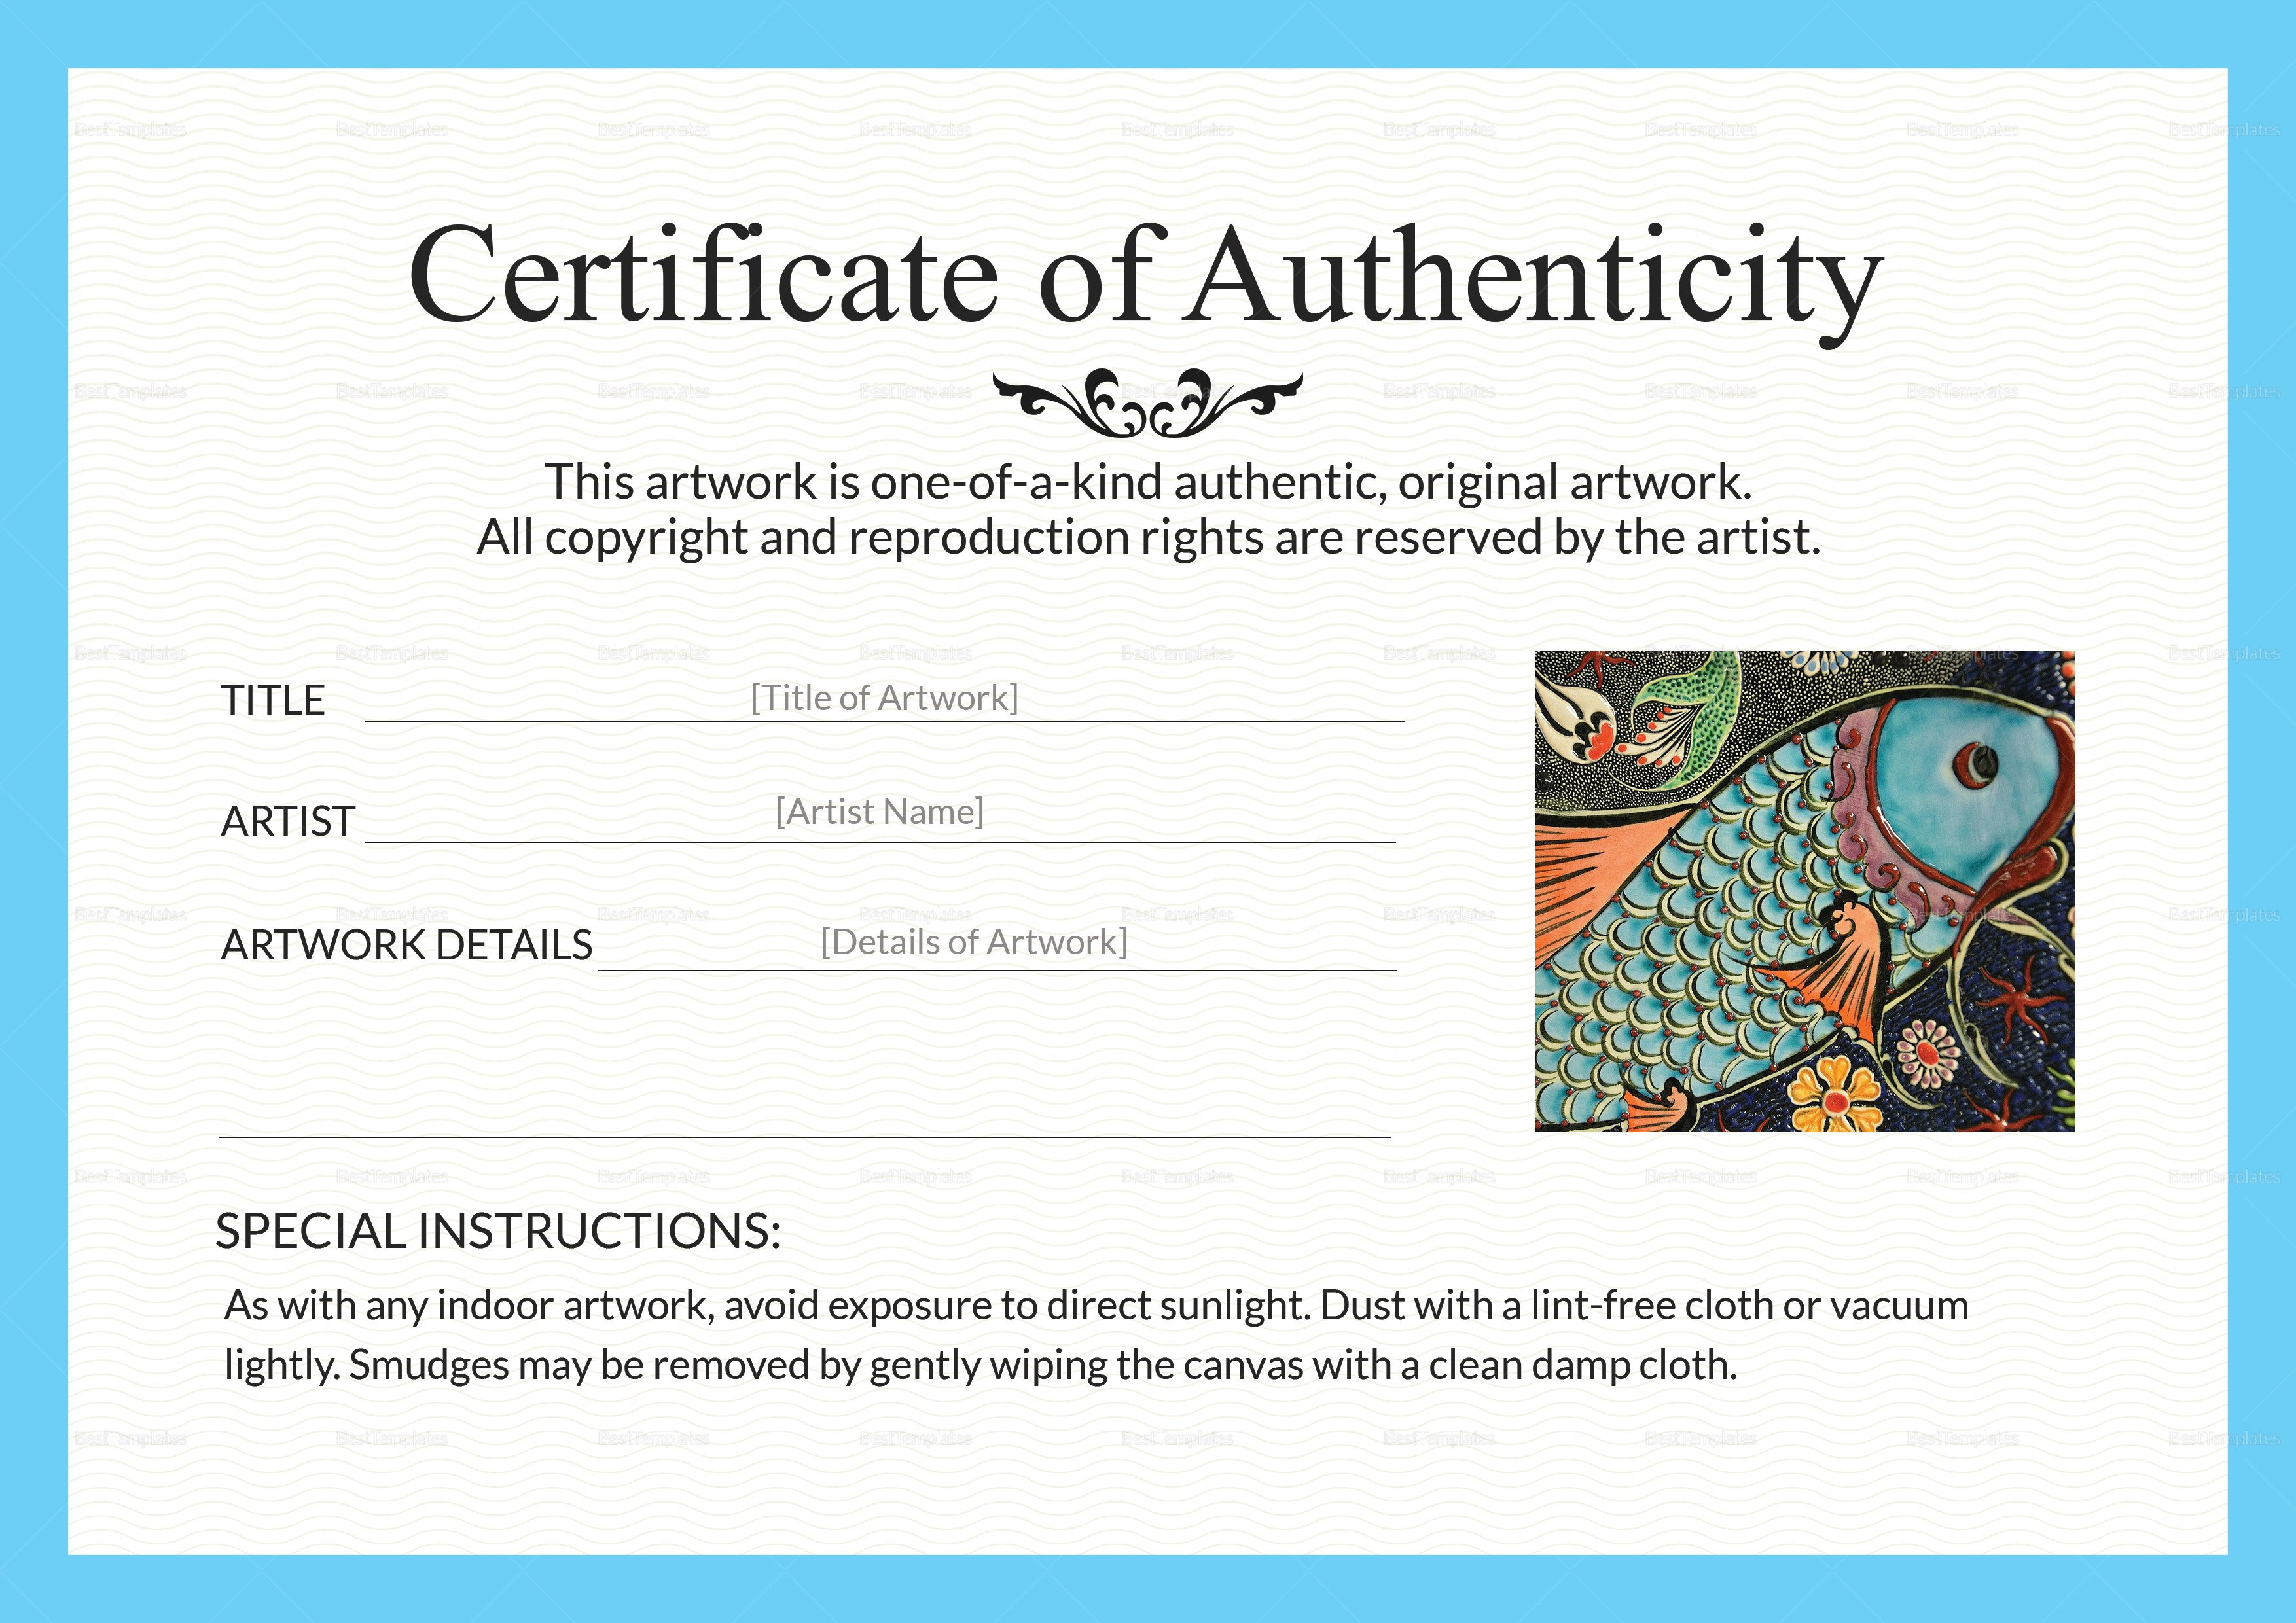 Certificate Of Authenticity Template Artwork Authenticity Certificate Design Template In Psd Word